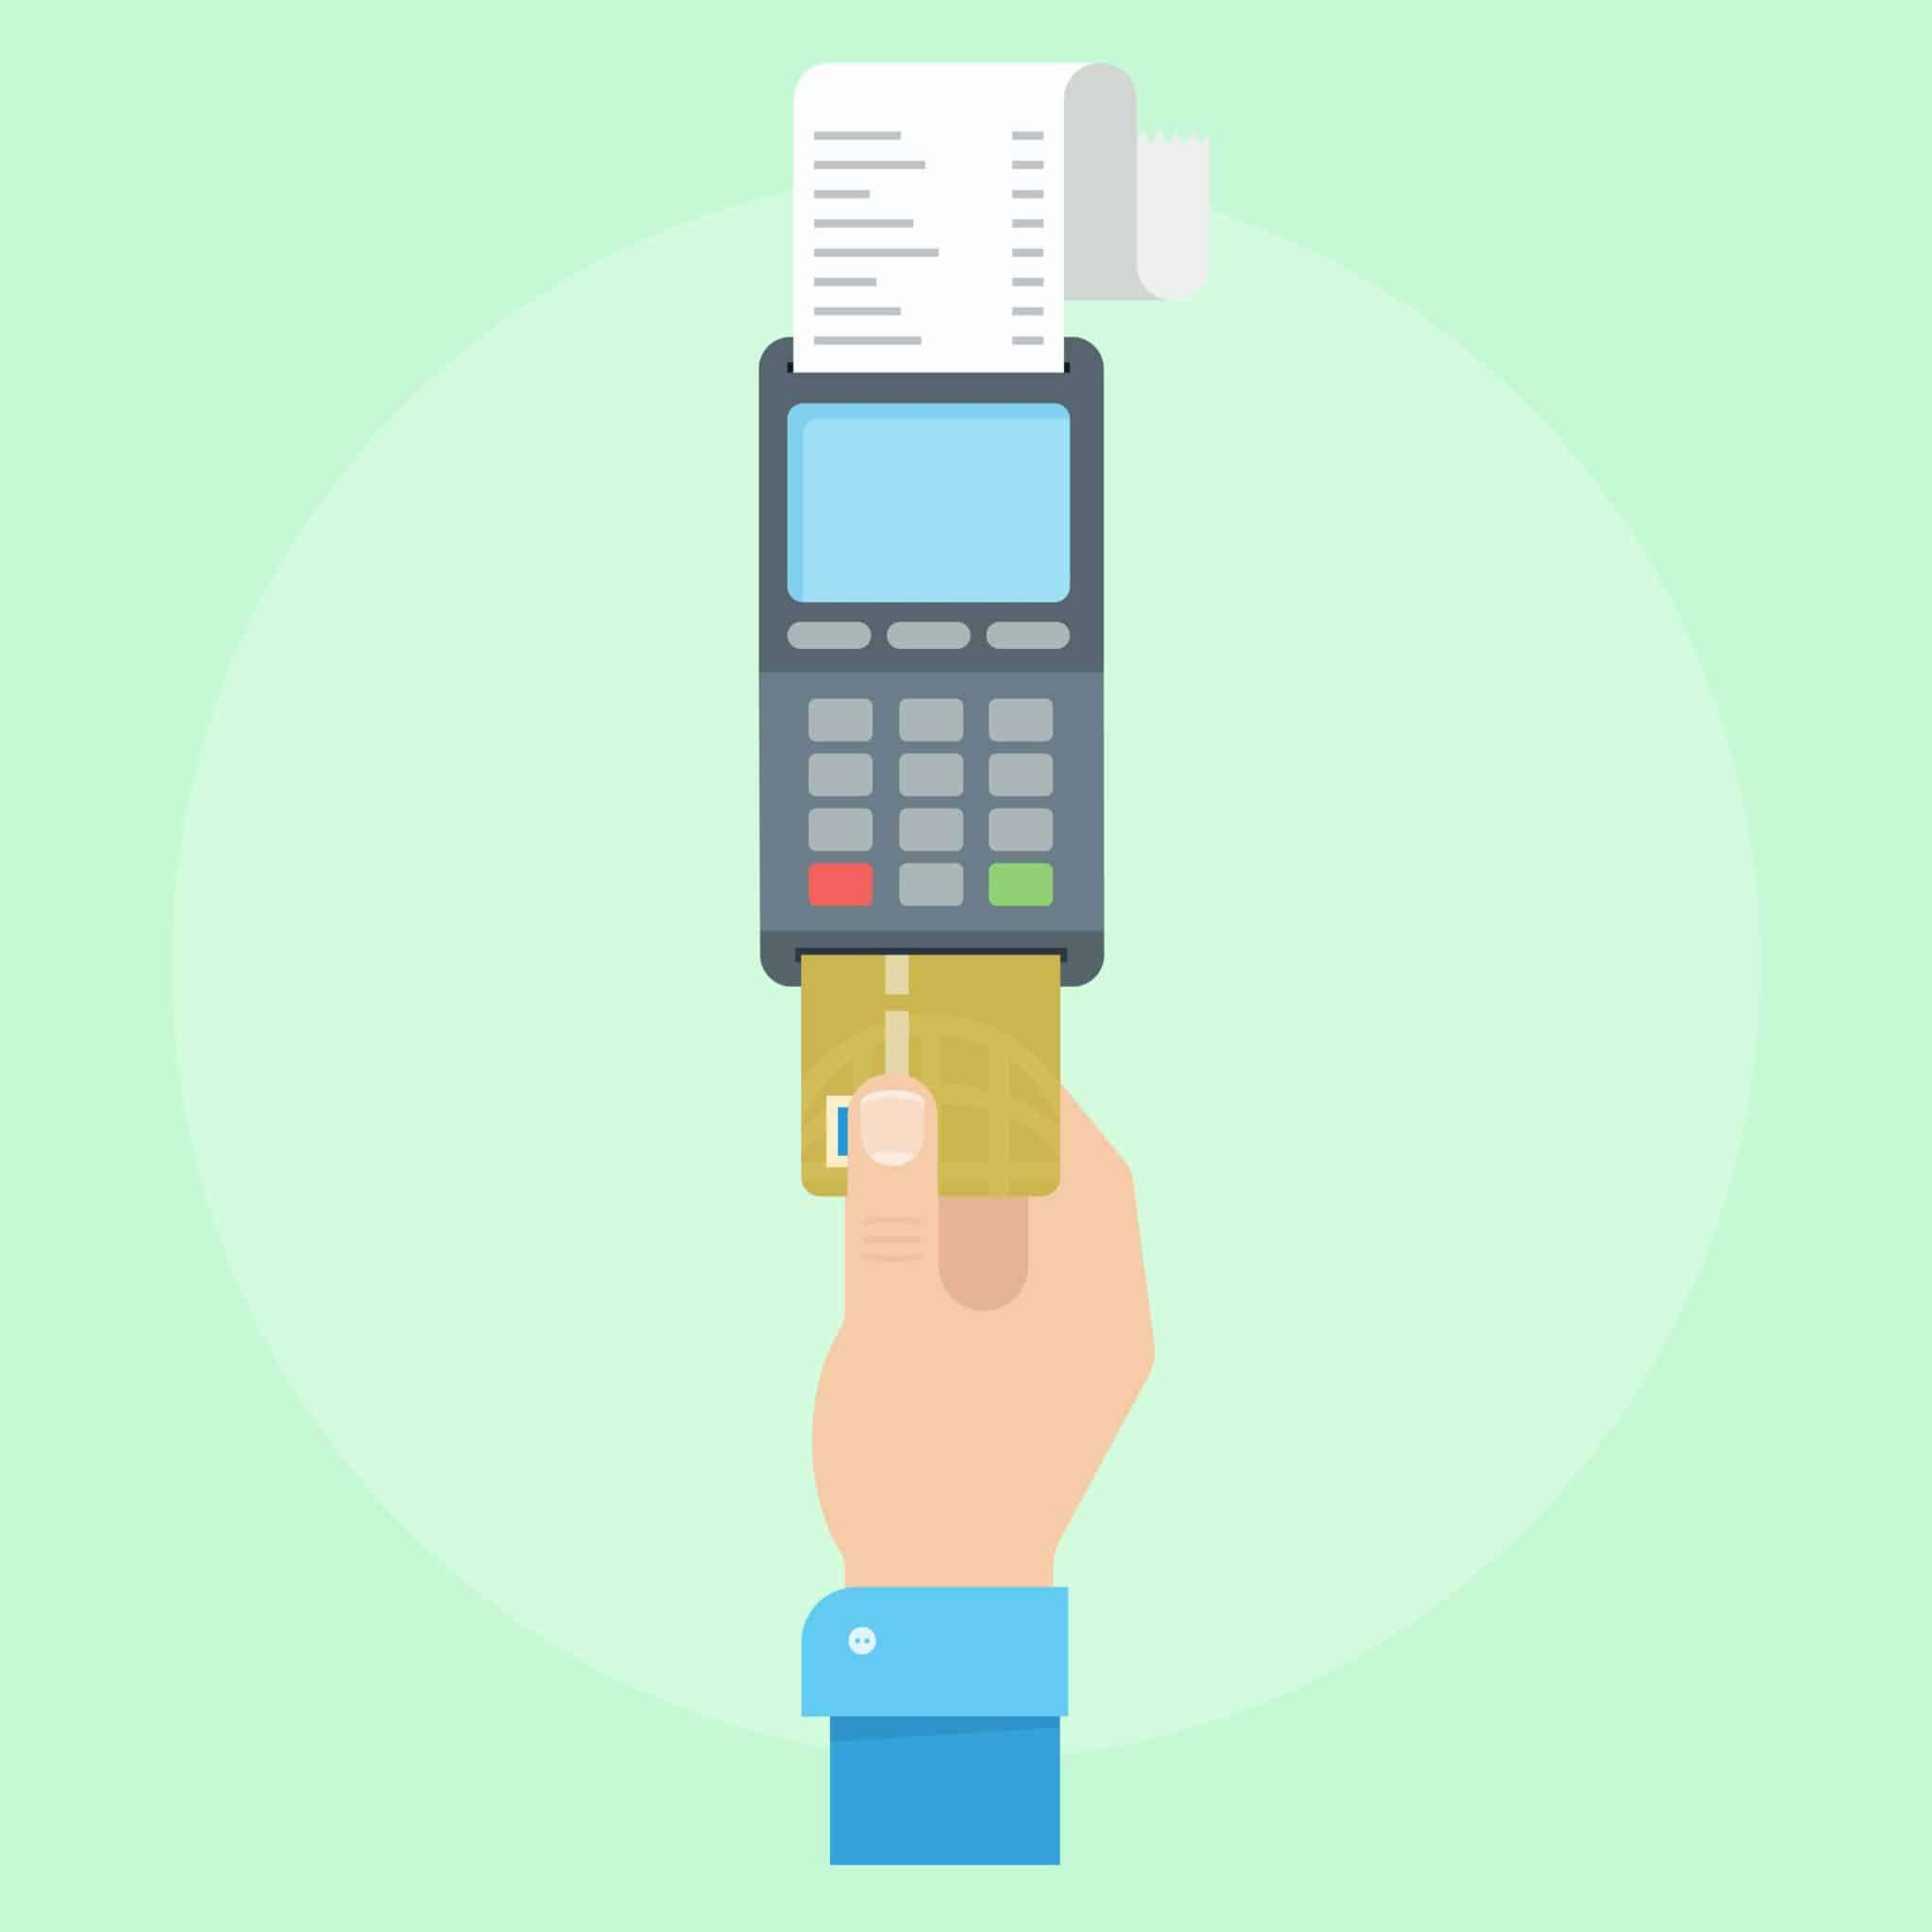 Pos payment. Payment credit card concept. Pos pay. POS terminal with inserted credit card. Pos payment vector illustration. Payment with a credit card machine. Cashless vending.